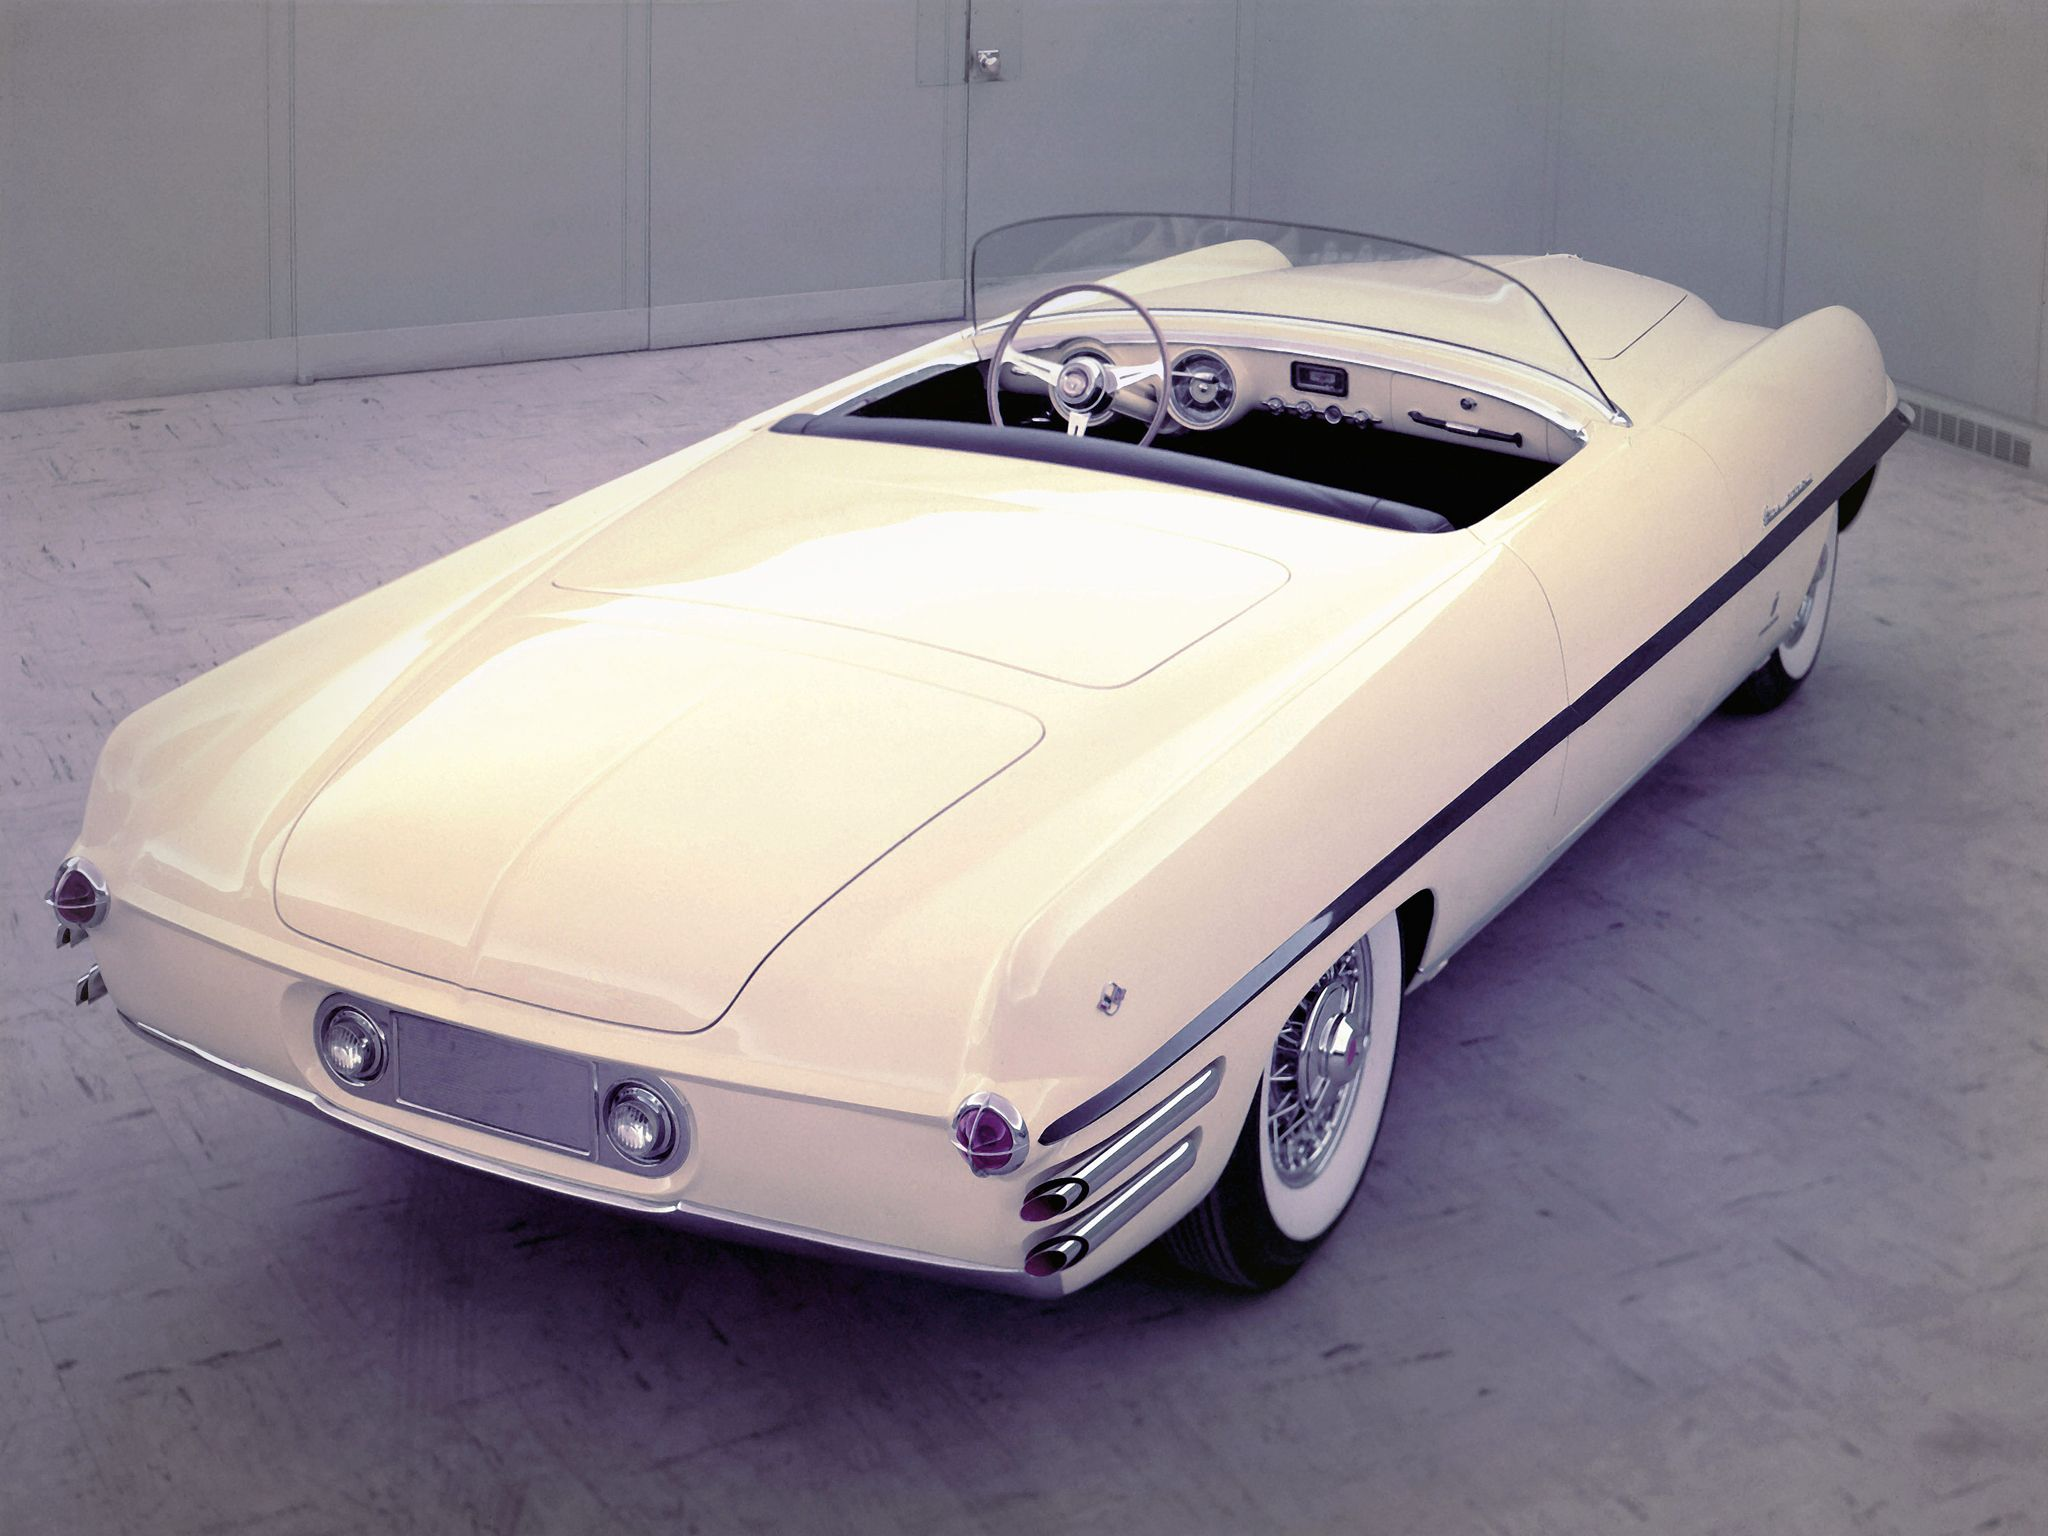 1956 chrysler boano auto shows car and driver - 127 Best Chrysler Family Ghia S Of The 50 S 60 S Images On Pinterest Cars Chrysler Cars And Vintage Cars